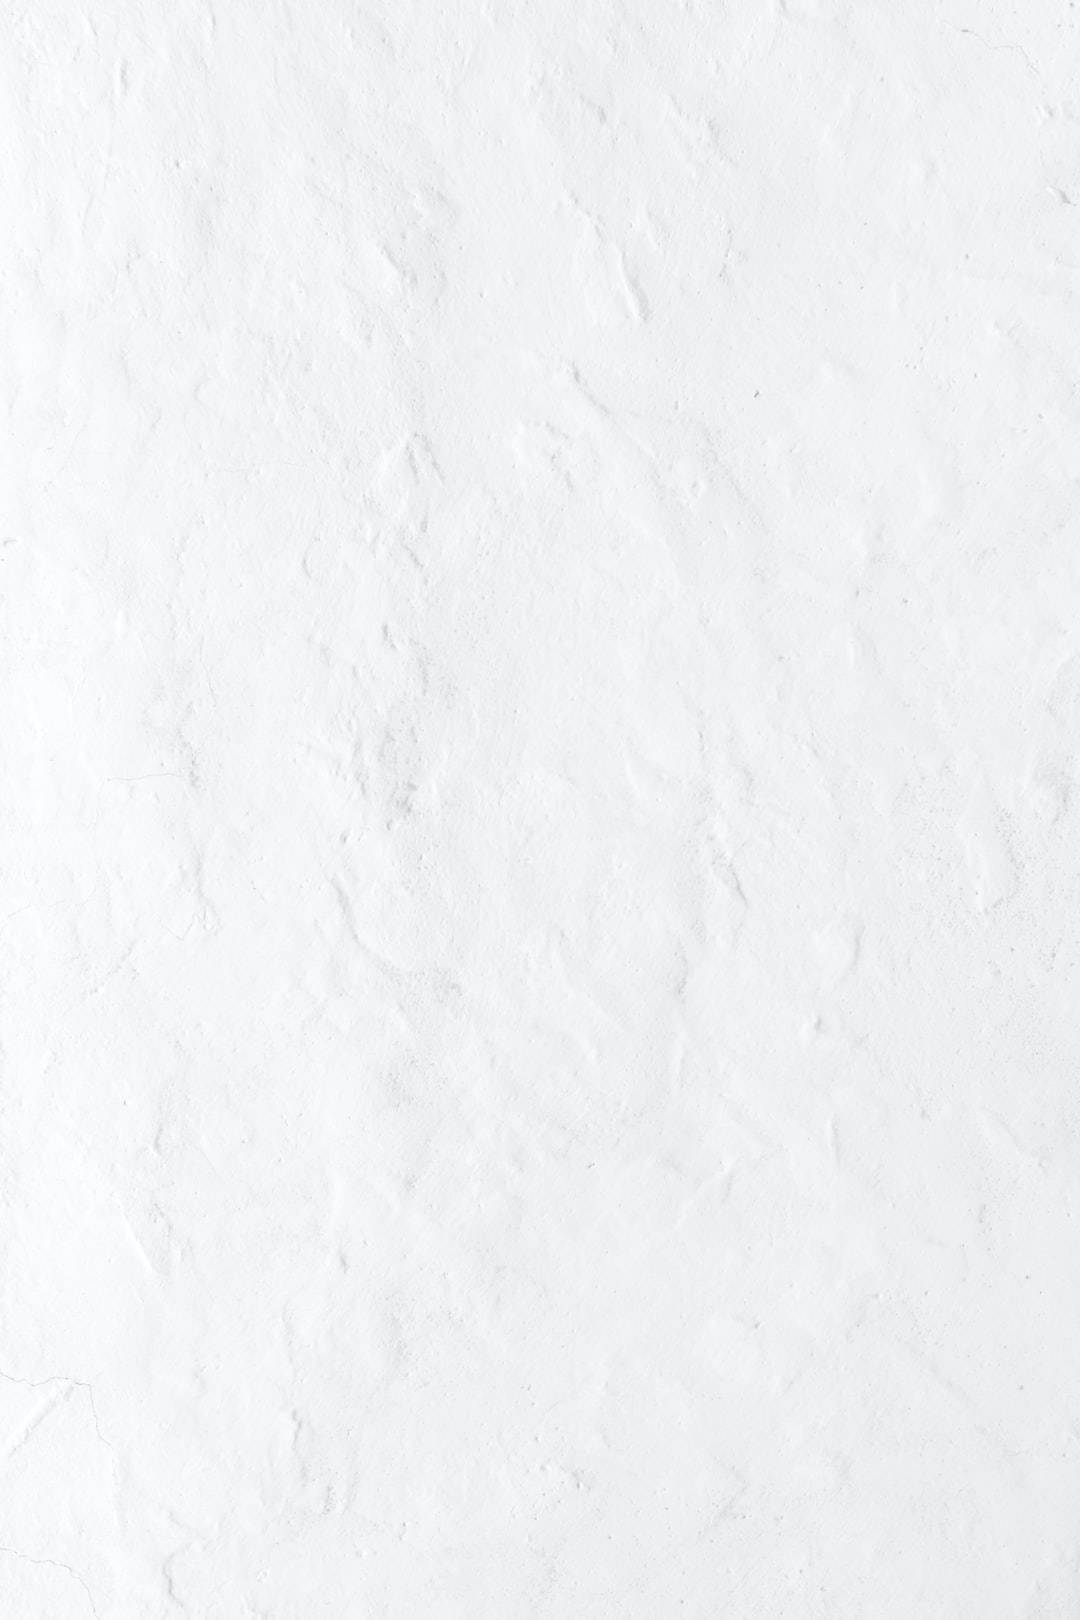 100 white pictures hd download free images stock - Download white background hd ...